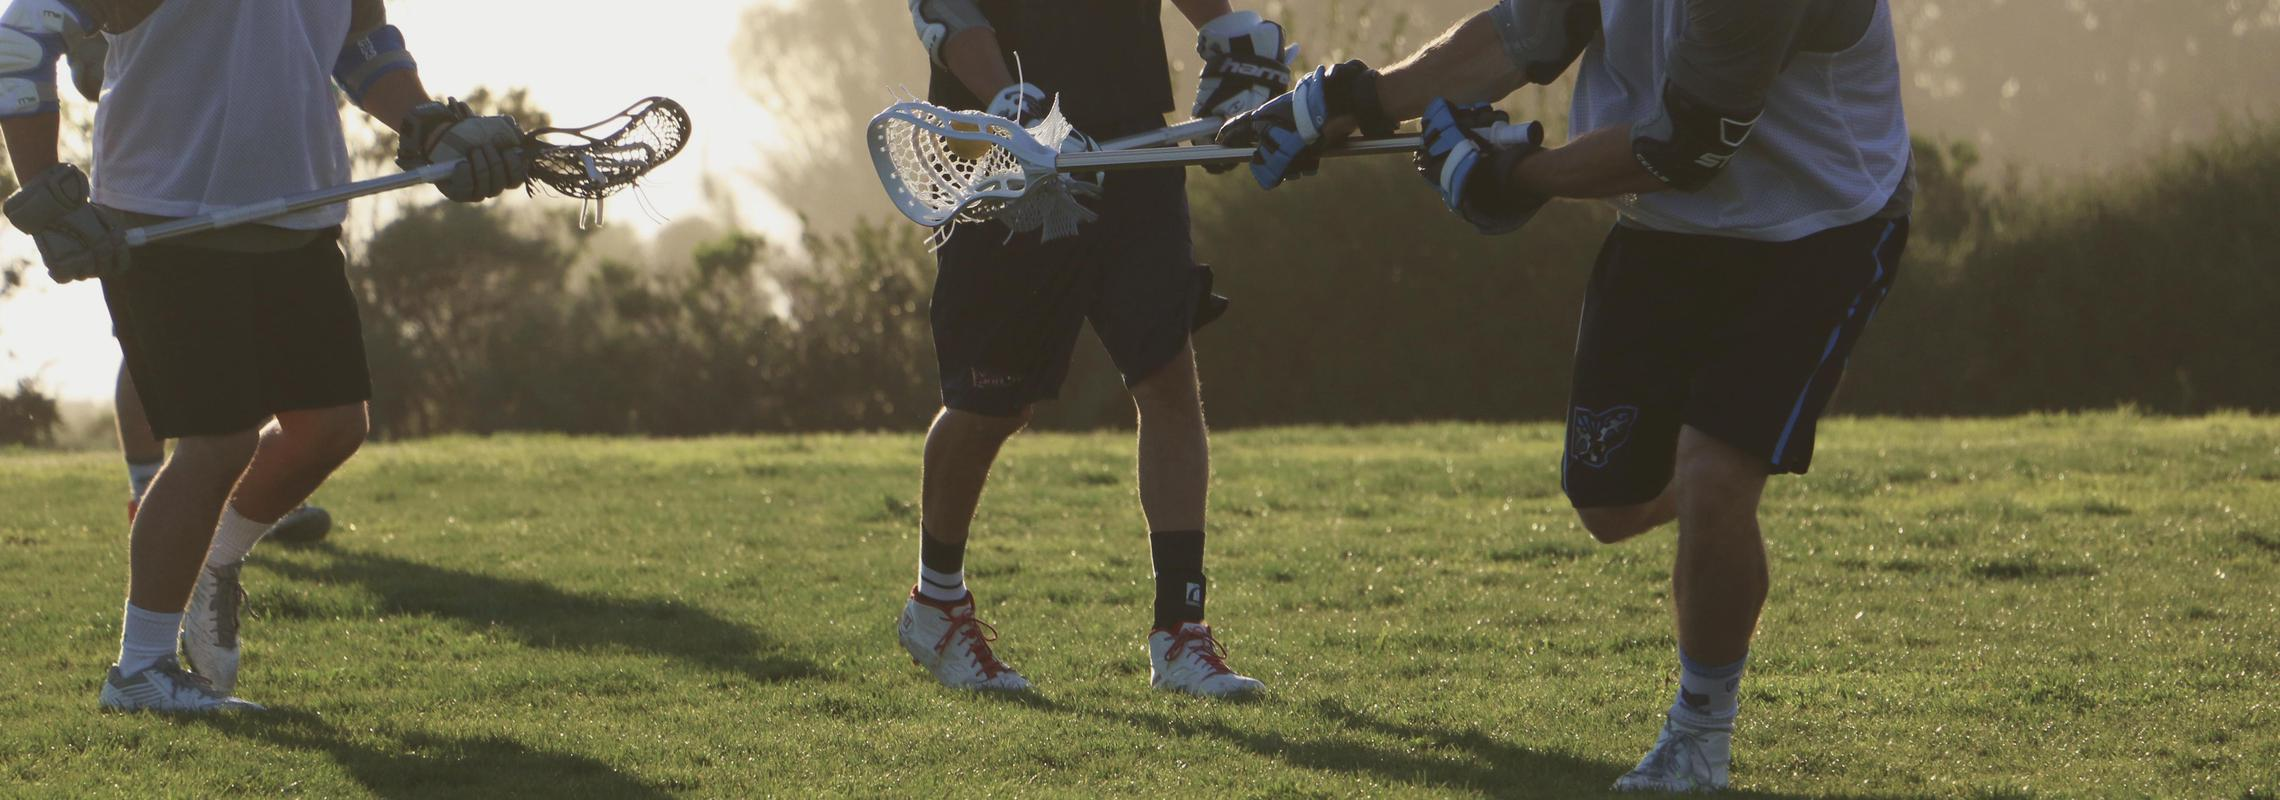 StringKing Complete Lacrosse Stick Pro Lacrosse Game